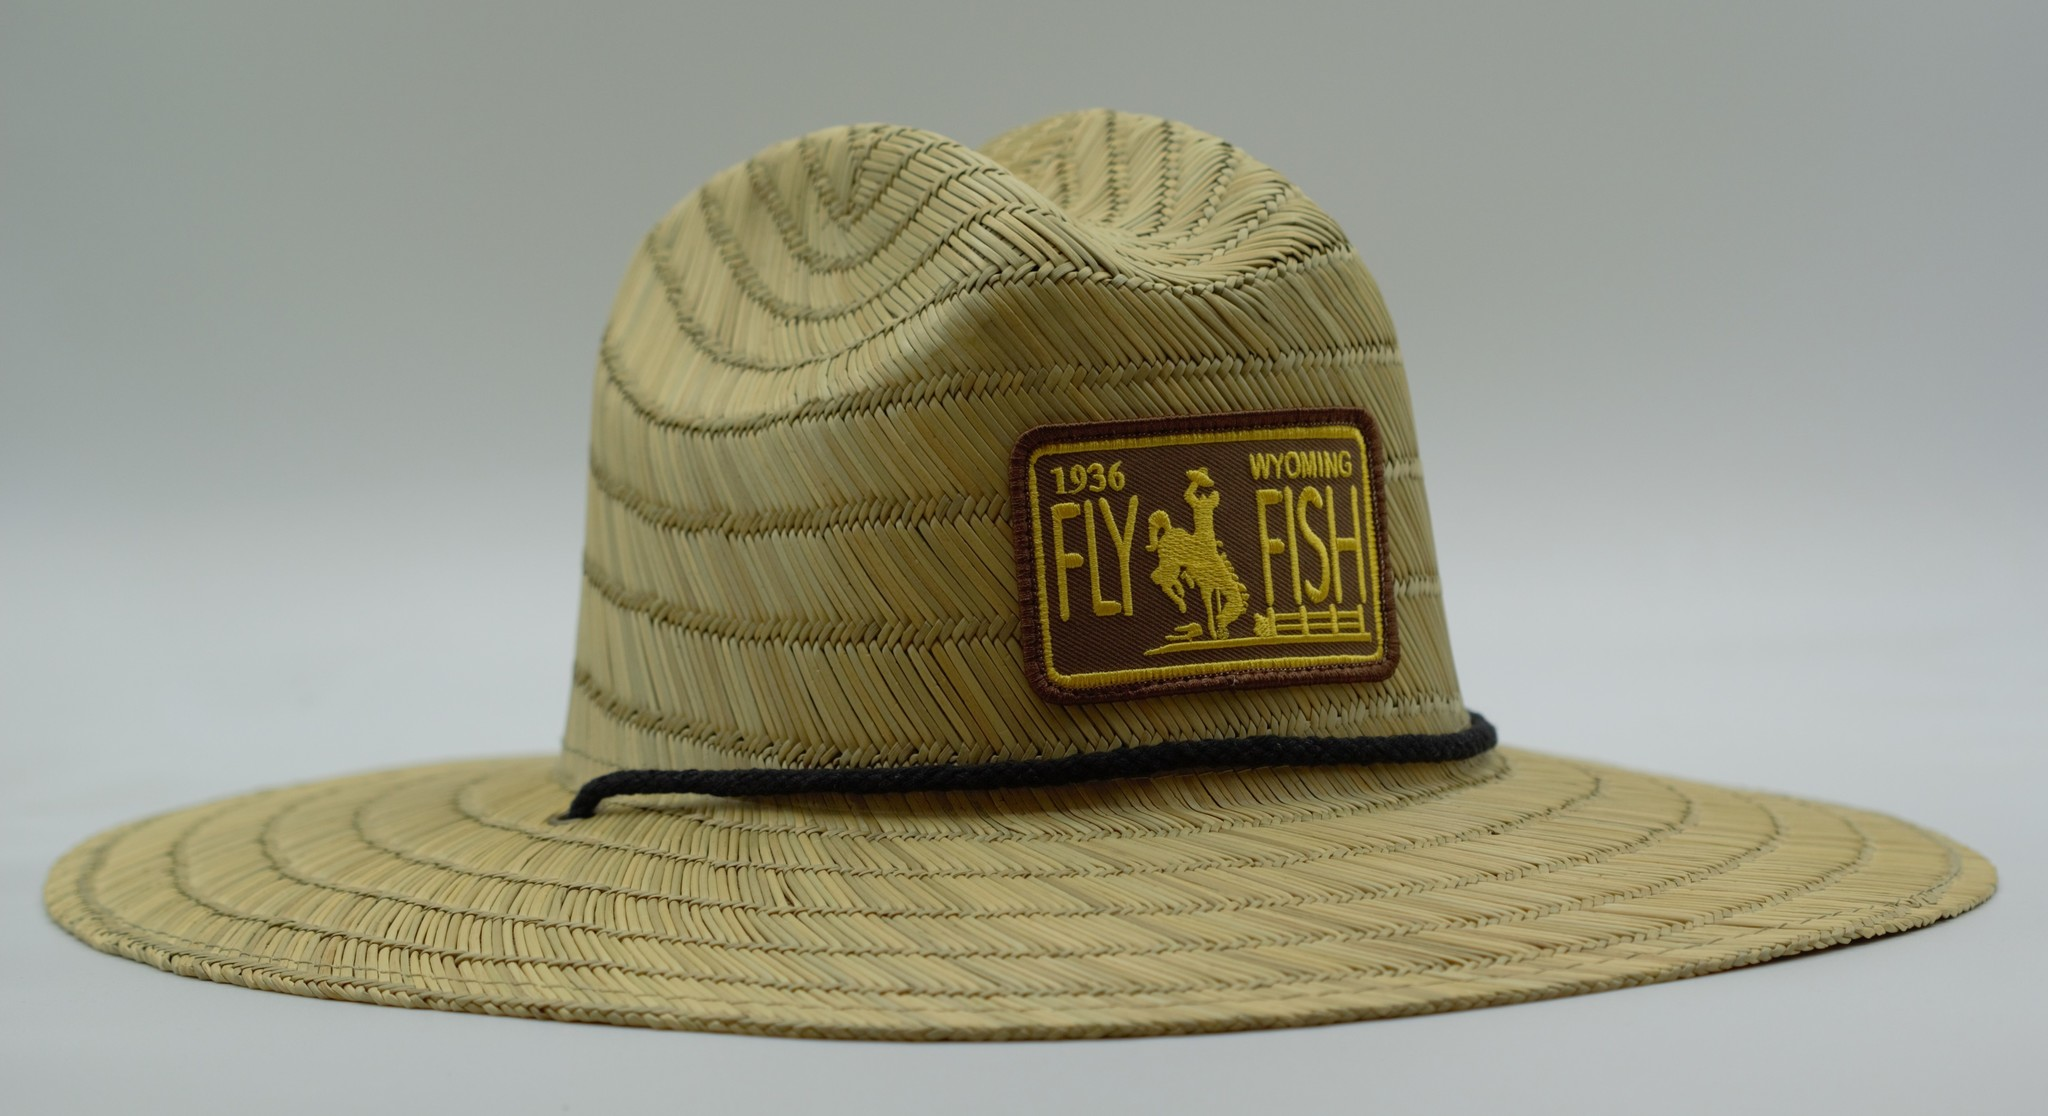 RICHARDSON RICHARDSON STRAW HAT WITH WYOMING LICENSE PLATE PATCH